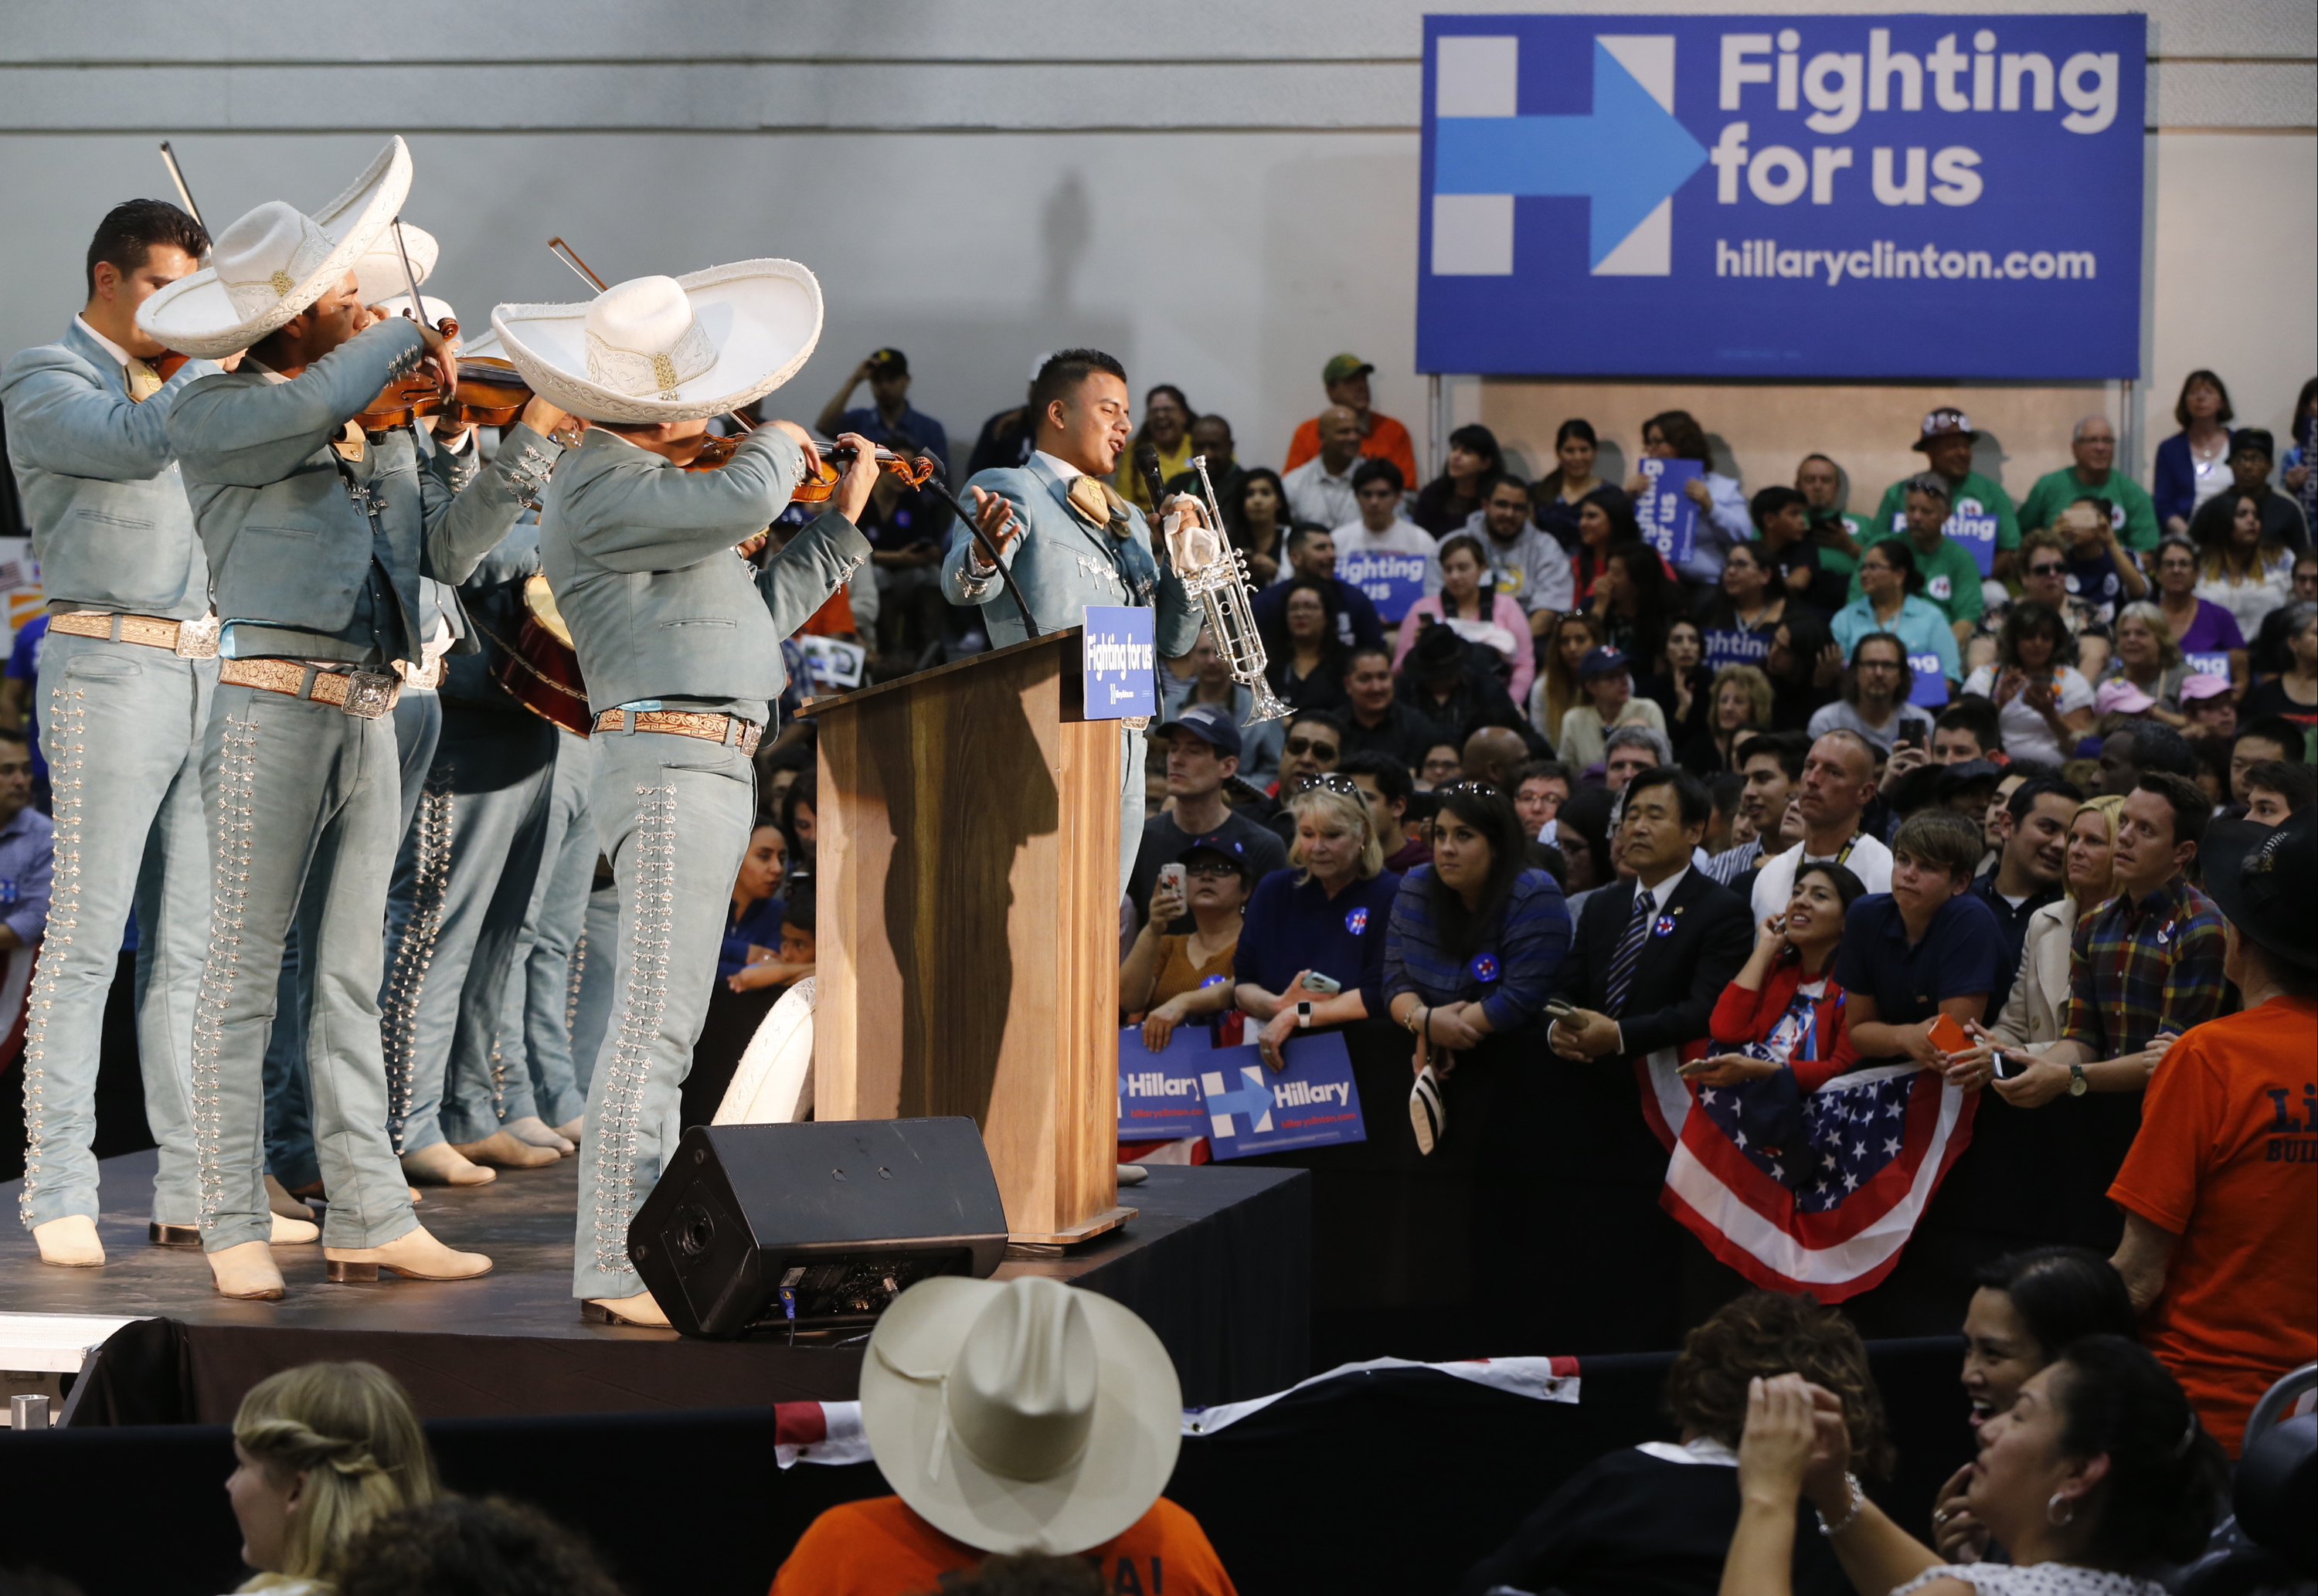 A mariachi band performs at an event of Democratic presidential candidate Hillary Clinton campaign at East Los Angeles College in Los Angeles, Thursday, May 5, 2016. (AP Photo/Damian Dovarganes)